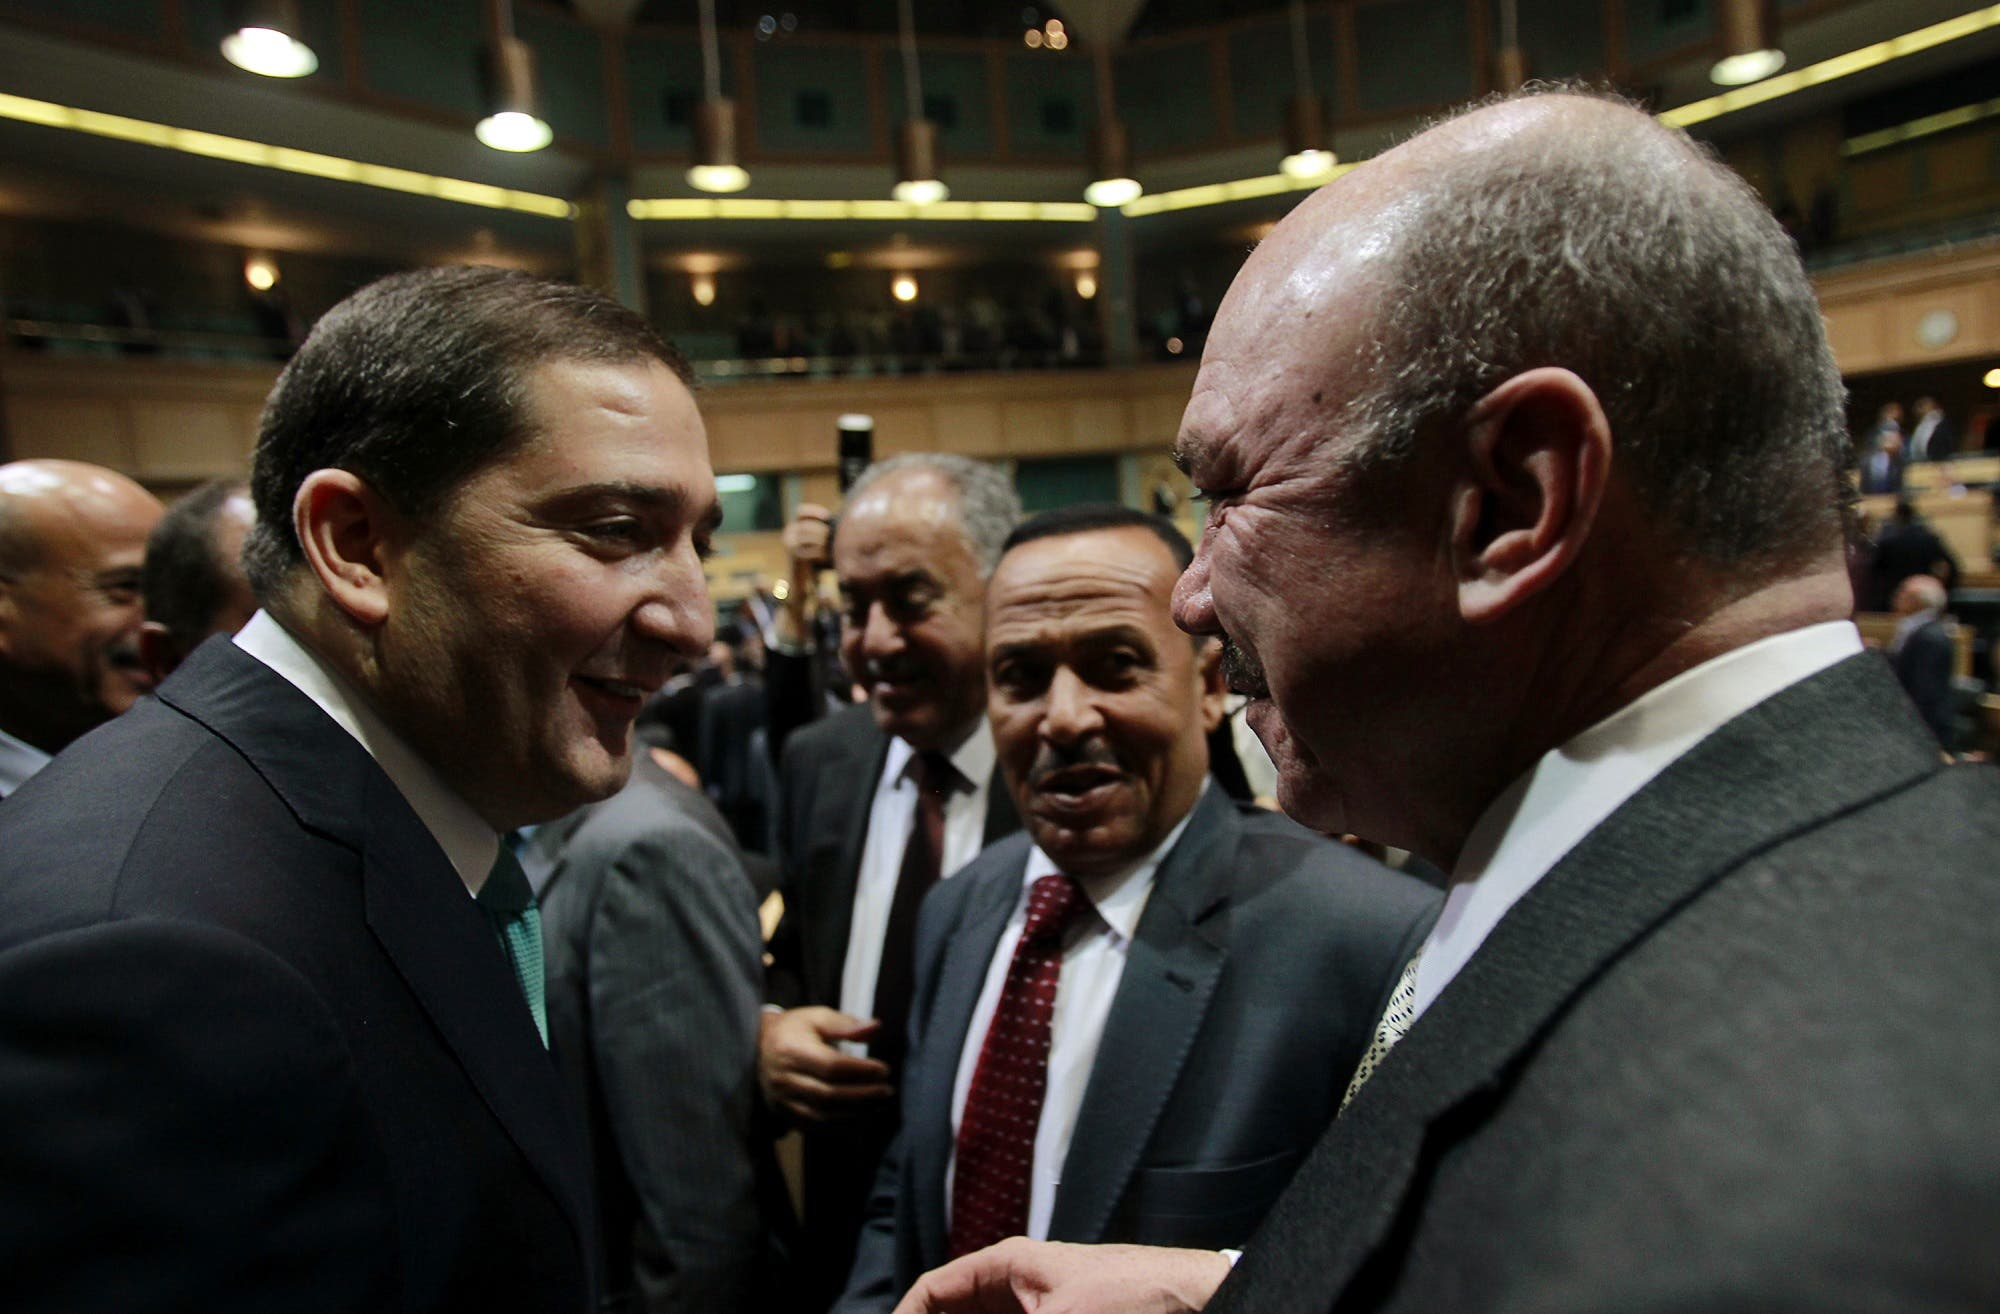 Samir al-Rifai accepts congratulations from President of the House of Representatives Faisal Al Fayez (R) after winning the vote of confidence in the House of Representatives in Amman December 23, 2010. (Reuters)